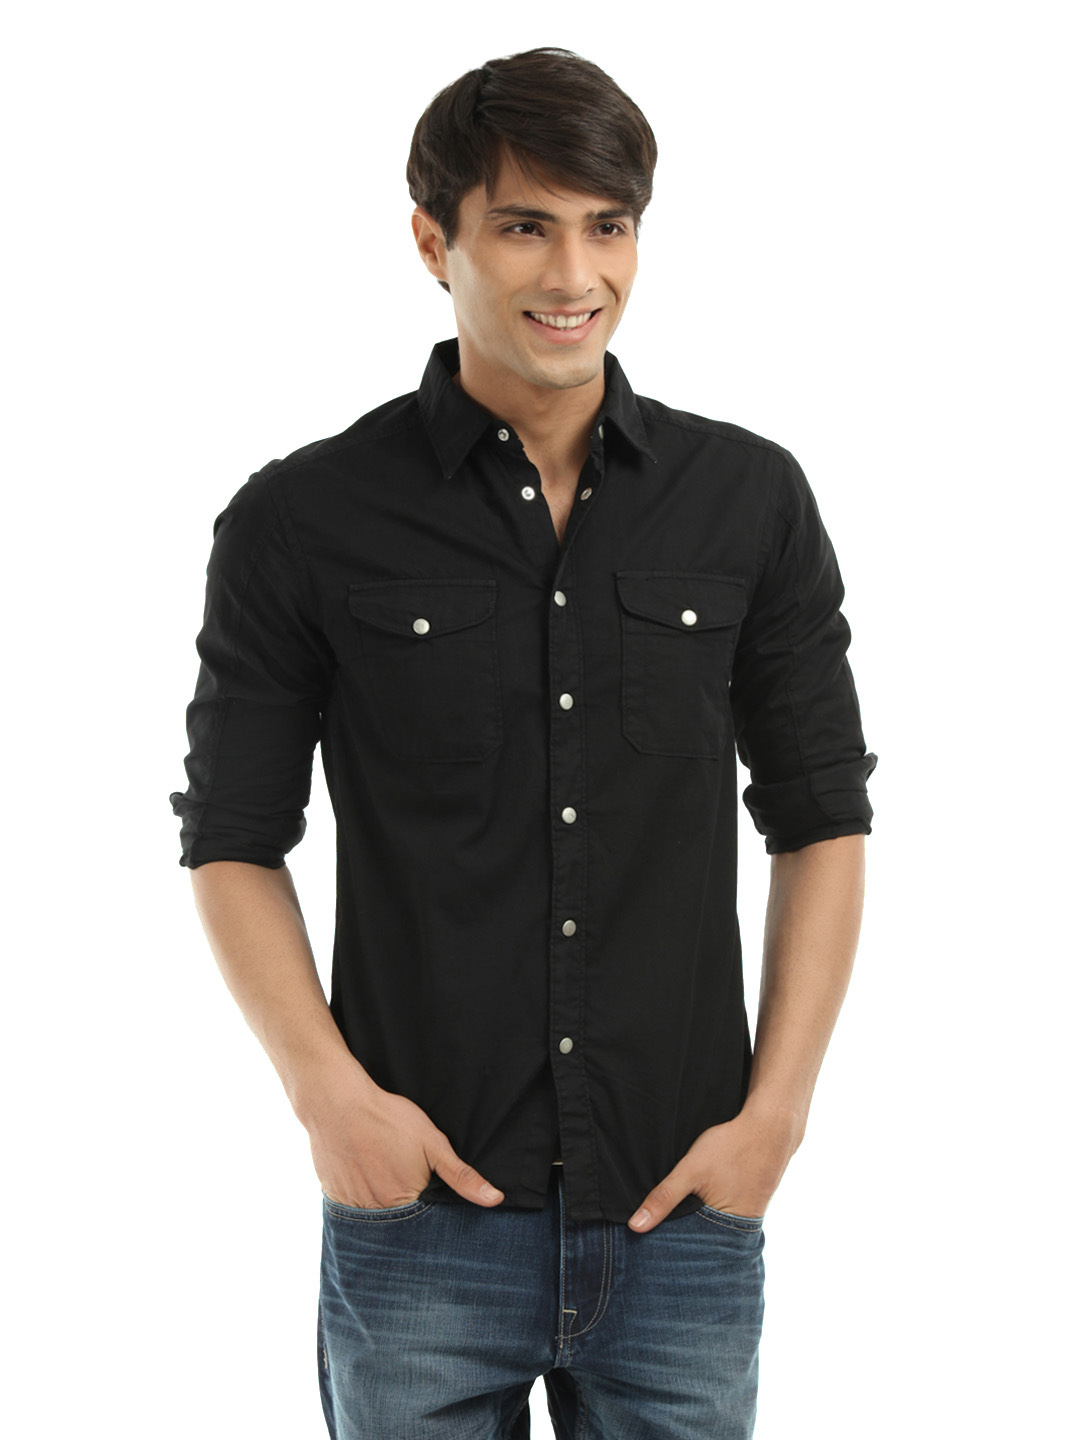 jeans black shirt bbg clothing